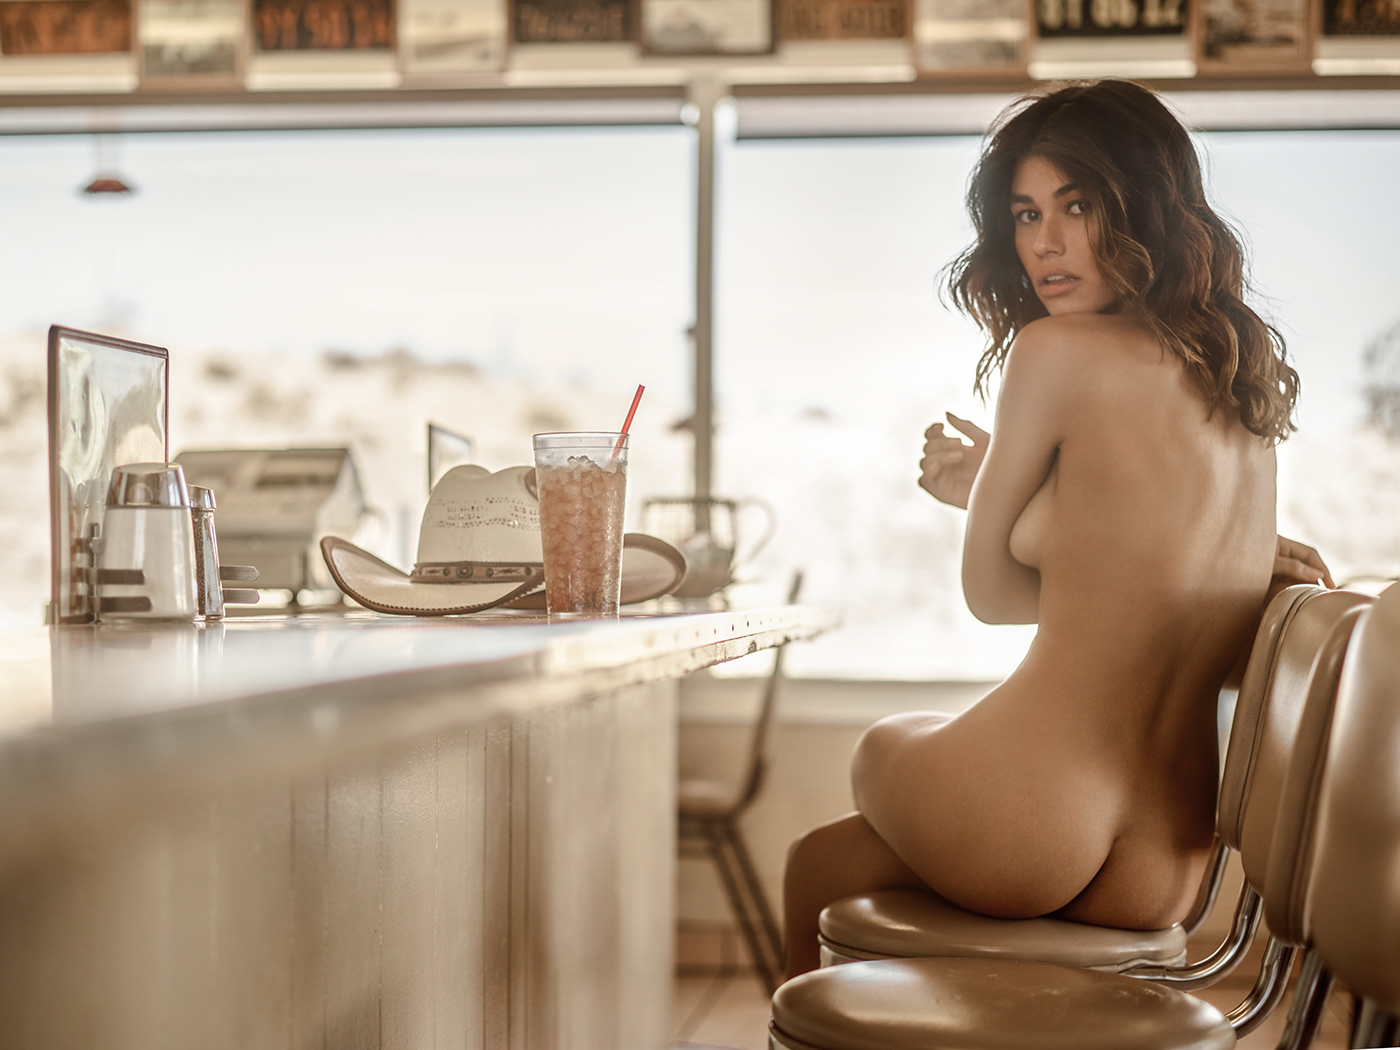 Lorena Medina for Playboy US 01/18 by Pascal Heimlicher